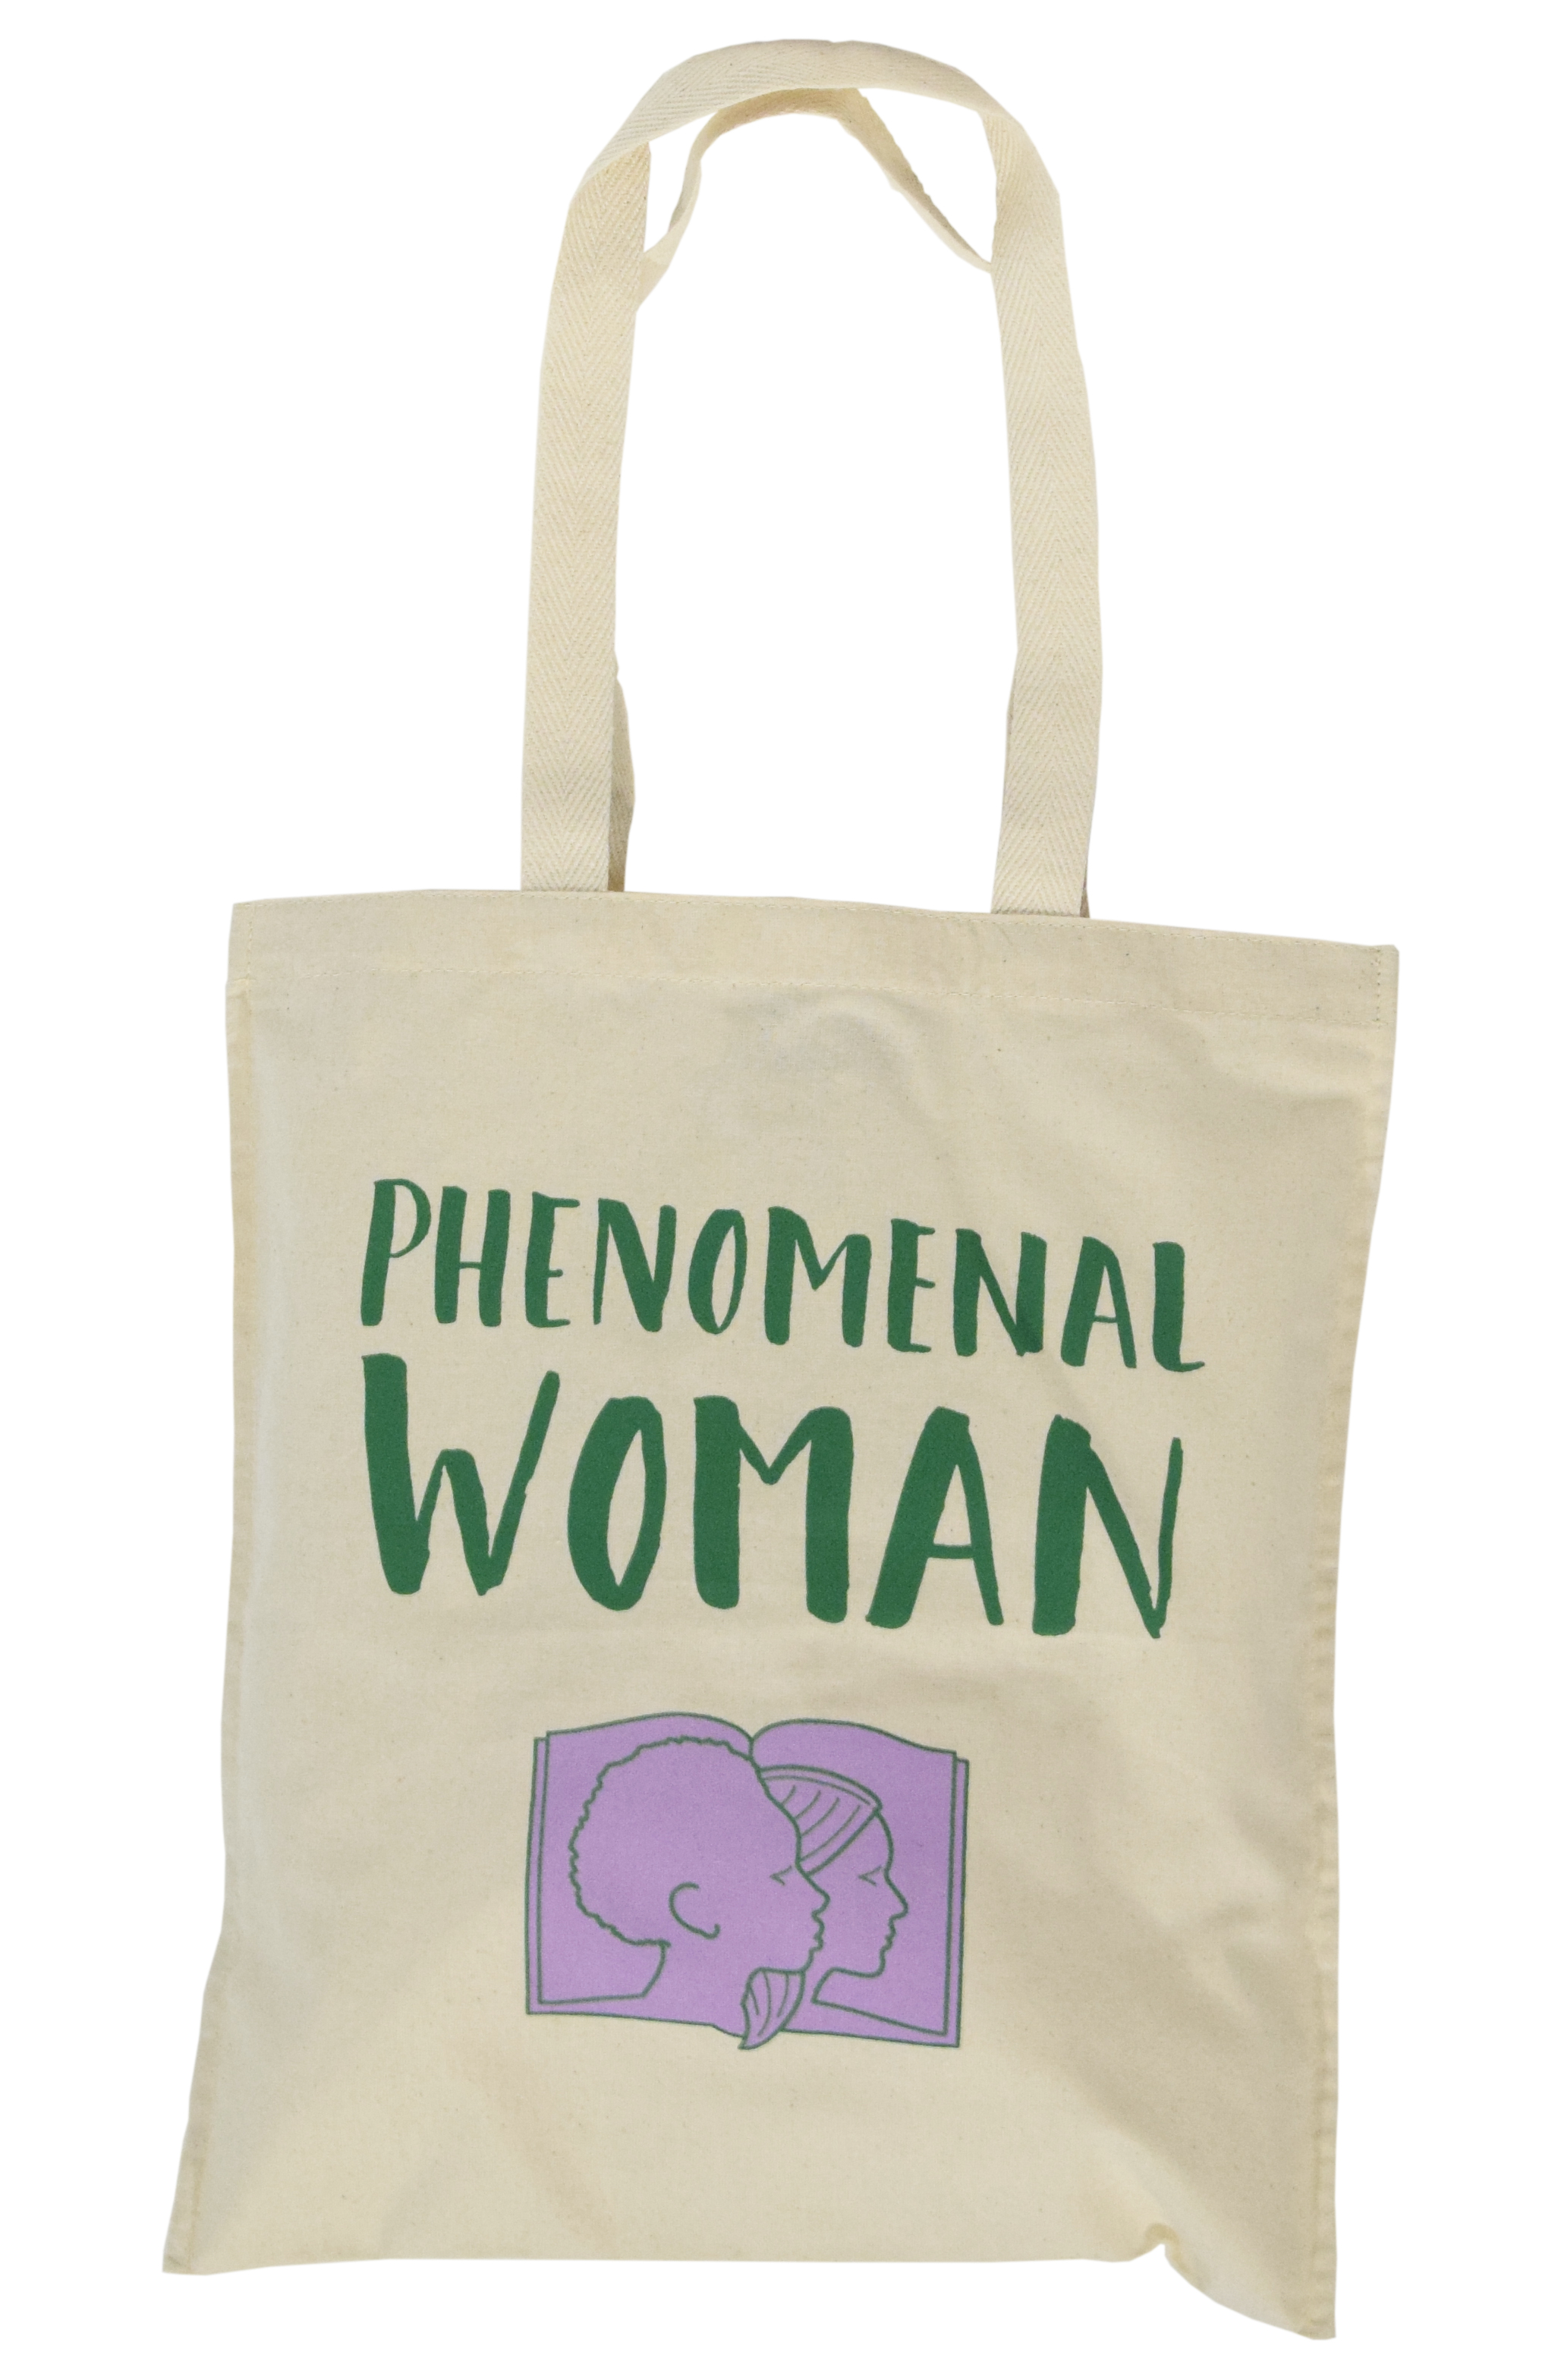 Phenomenal Woman Tote Bag